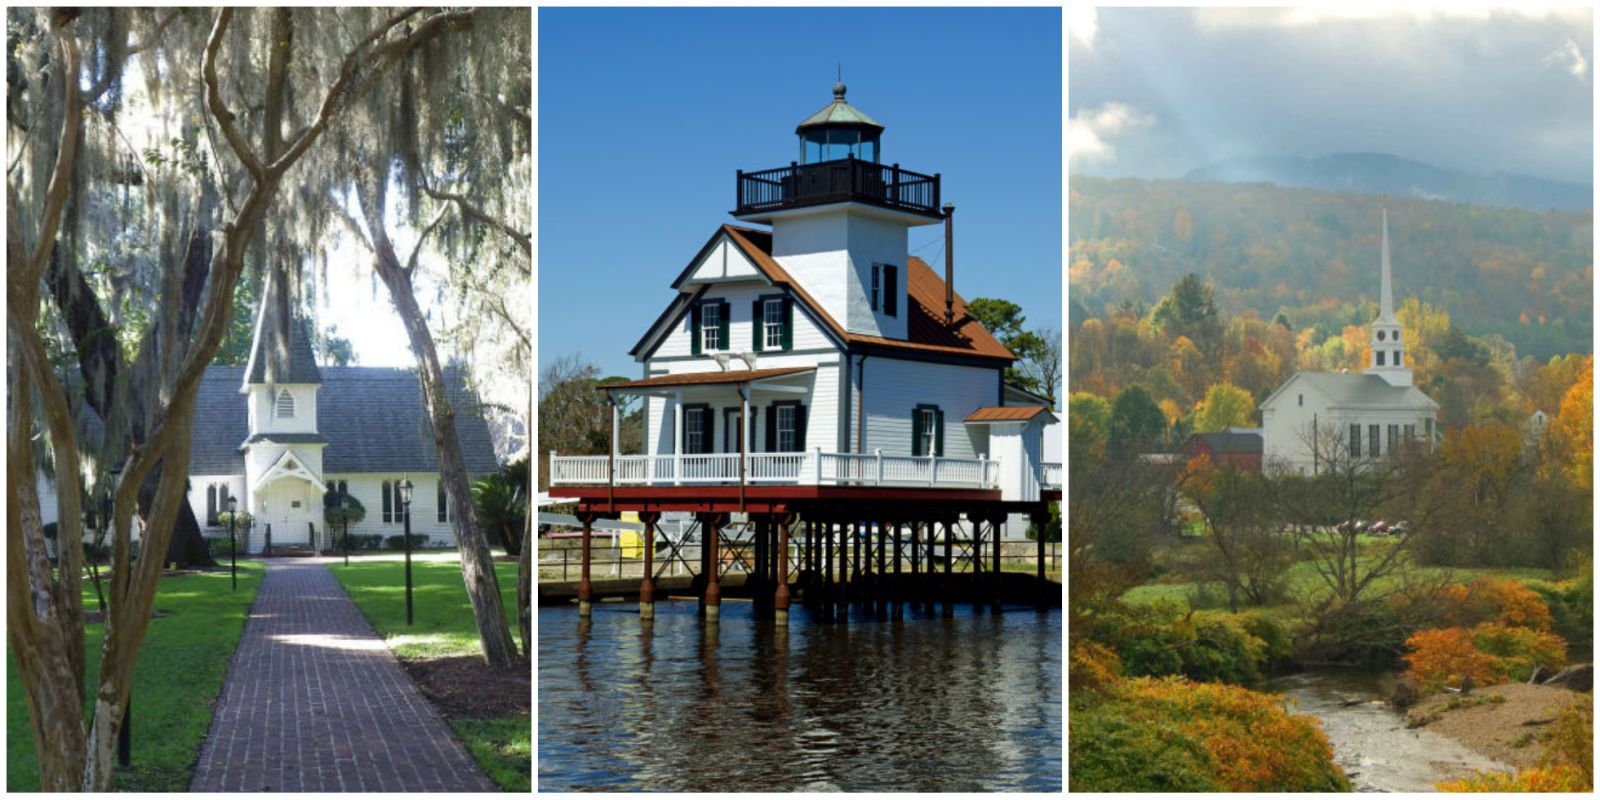 The Best Small Towns In America According To The Smithsonian - The 20 best small towns to visit in the usa